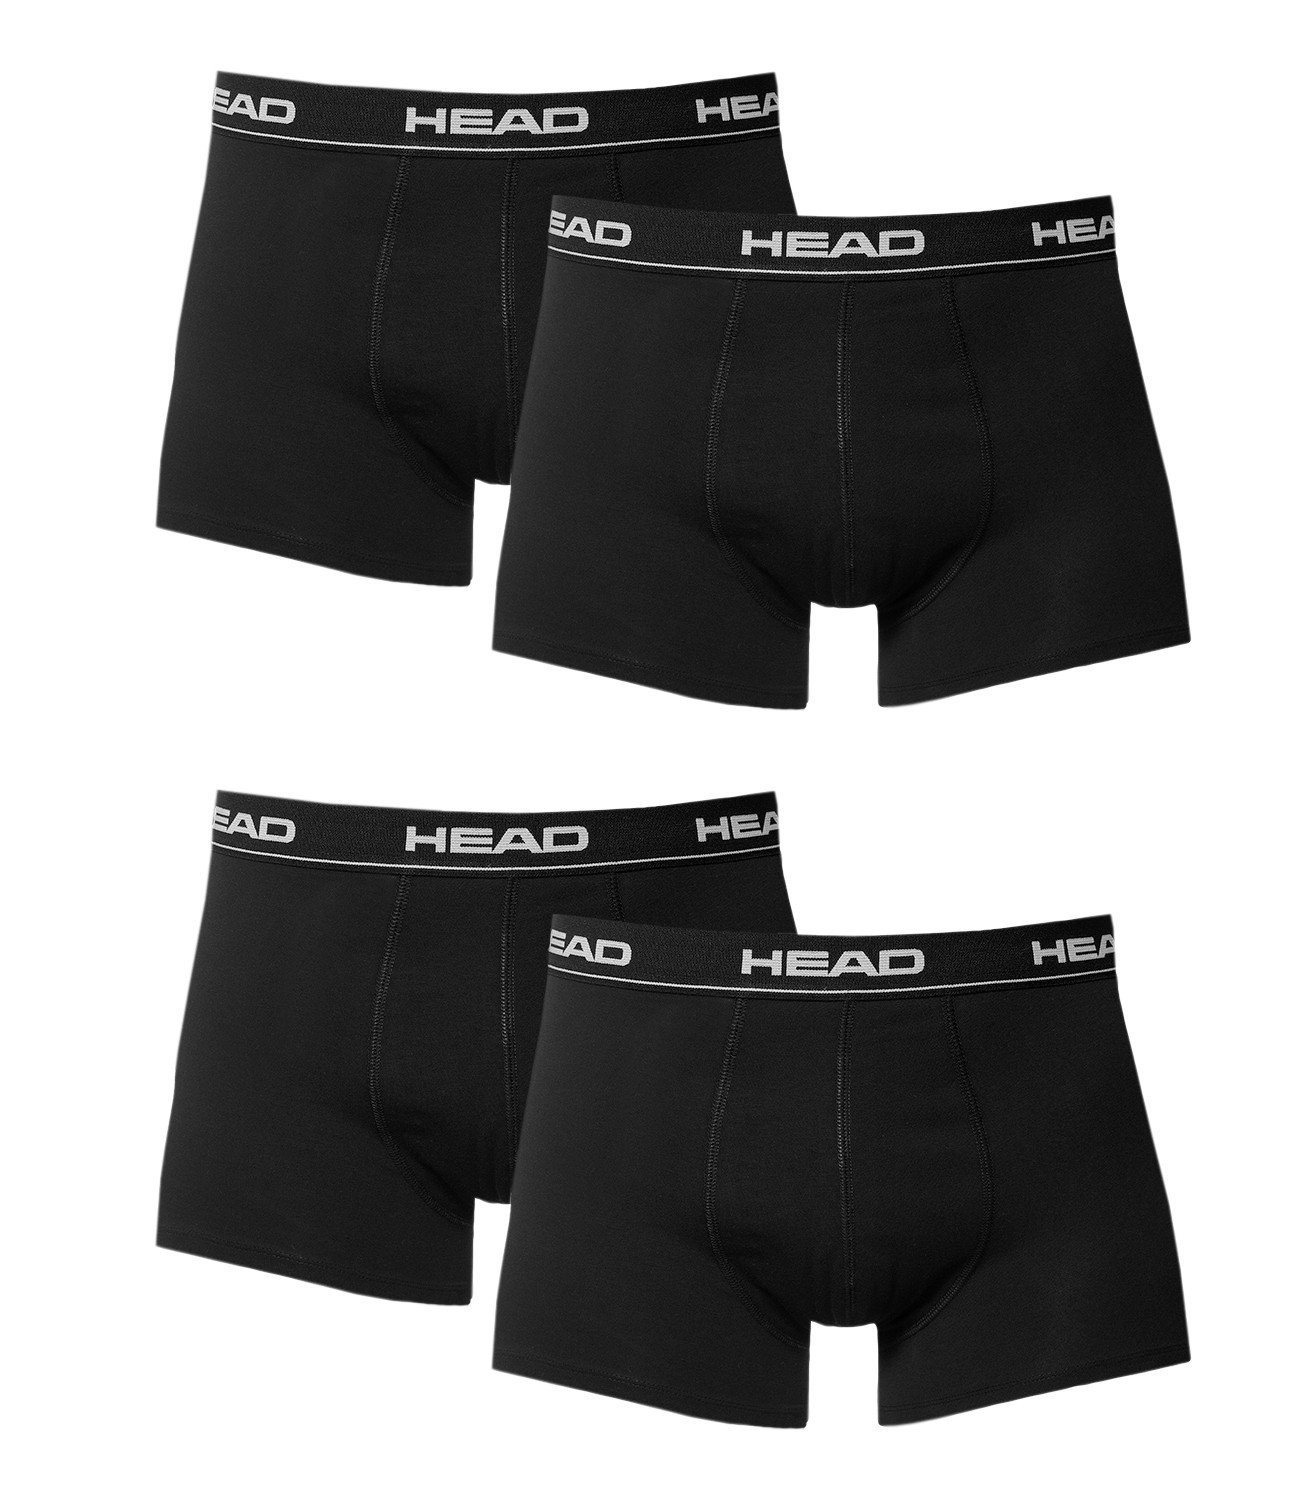 Head 4 x Pack Mens Boxer Shorts with Elastic Waistband ...